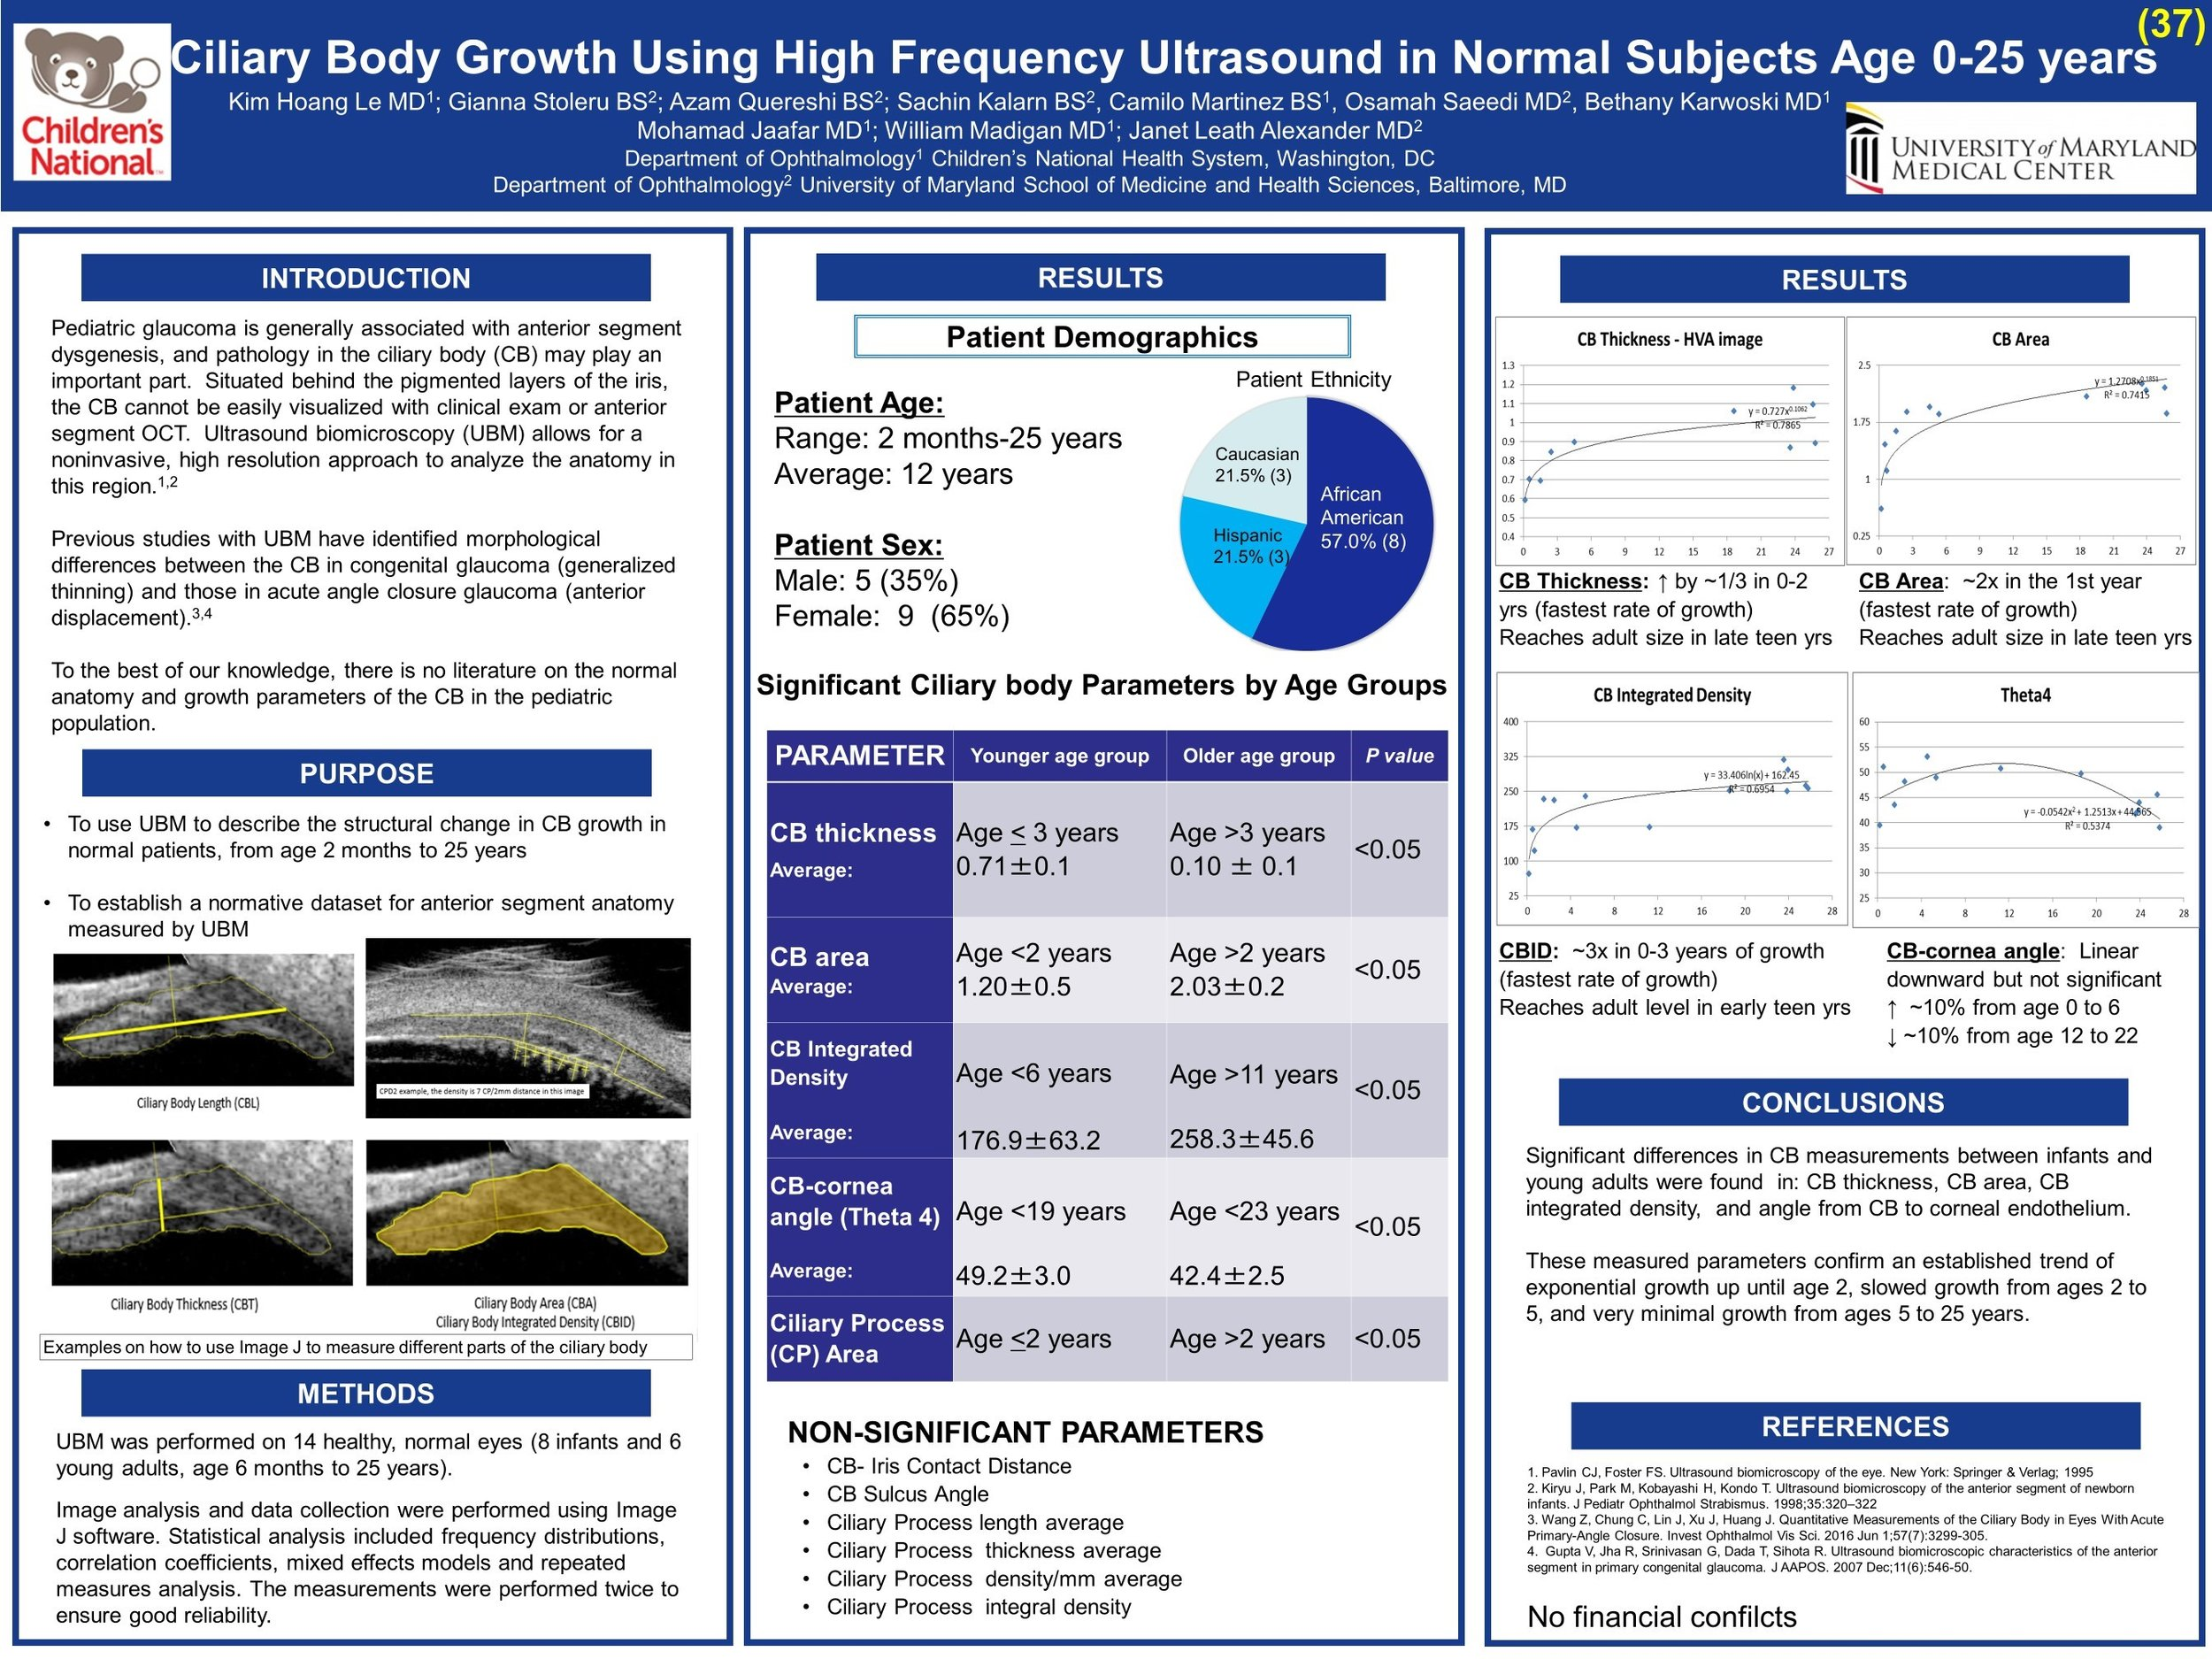 AAPOS 2017  Title:Ciliary Body Growth Using High Frequency Ultrasound in Normal Subjects Age 0-25 years